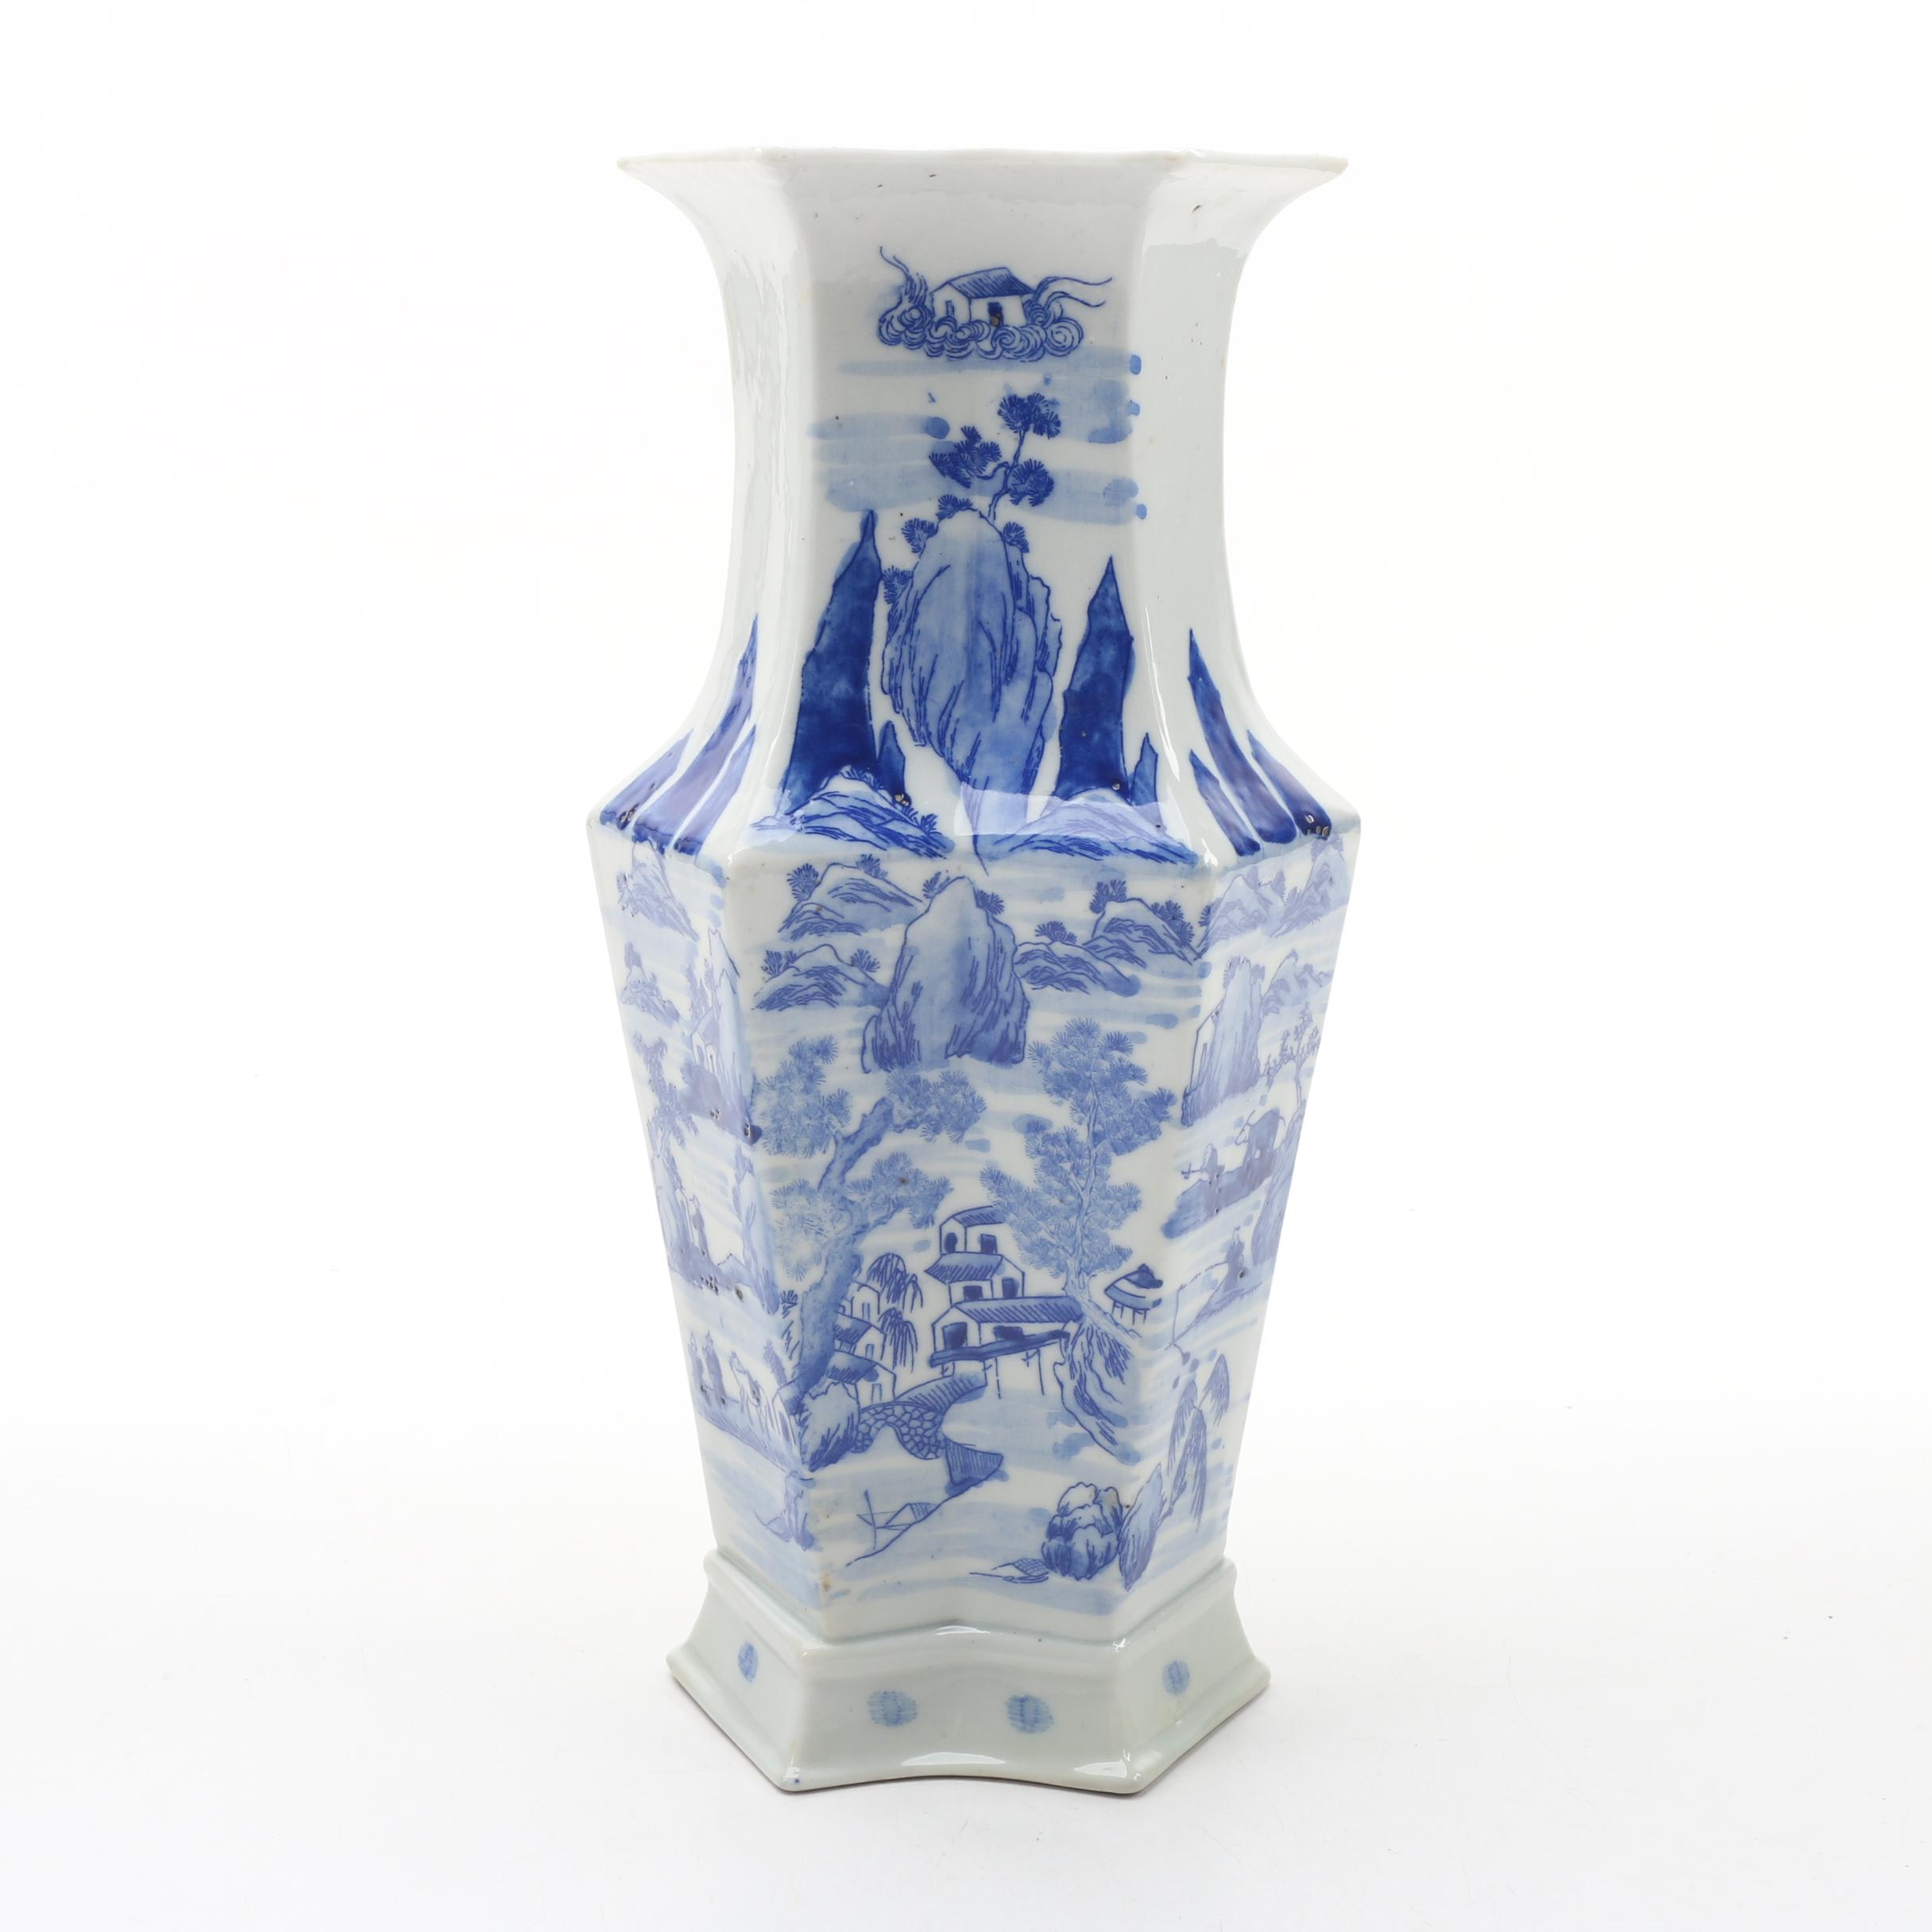 Chinese Blue and White Porcelain Vase with Rural Village Scene, Late Qing